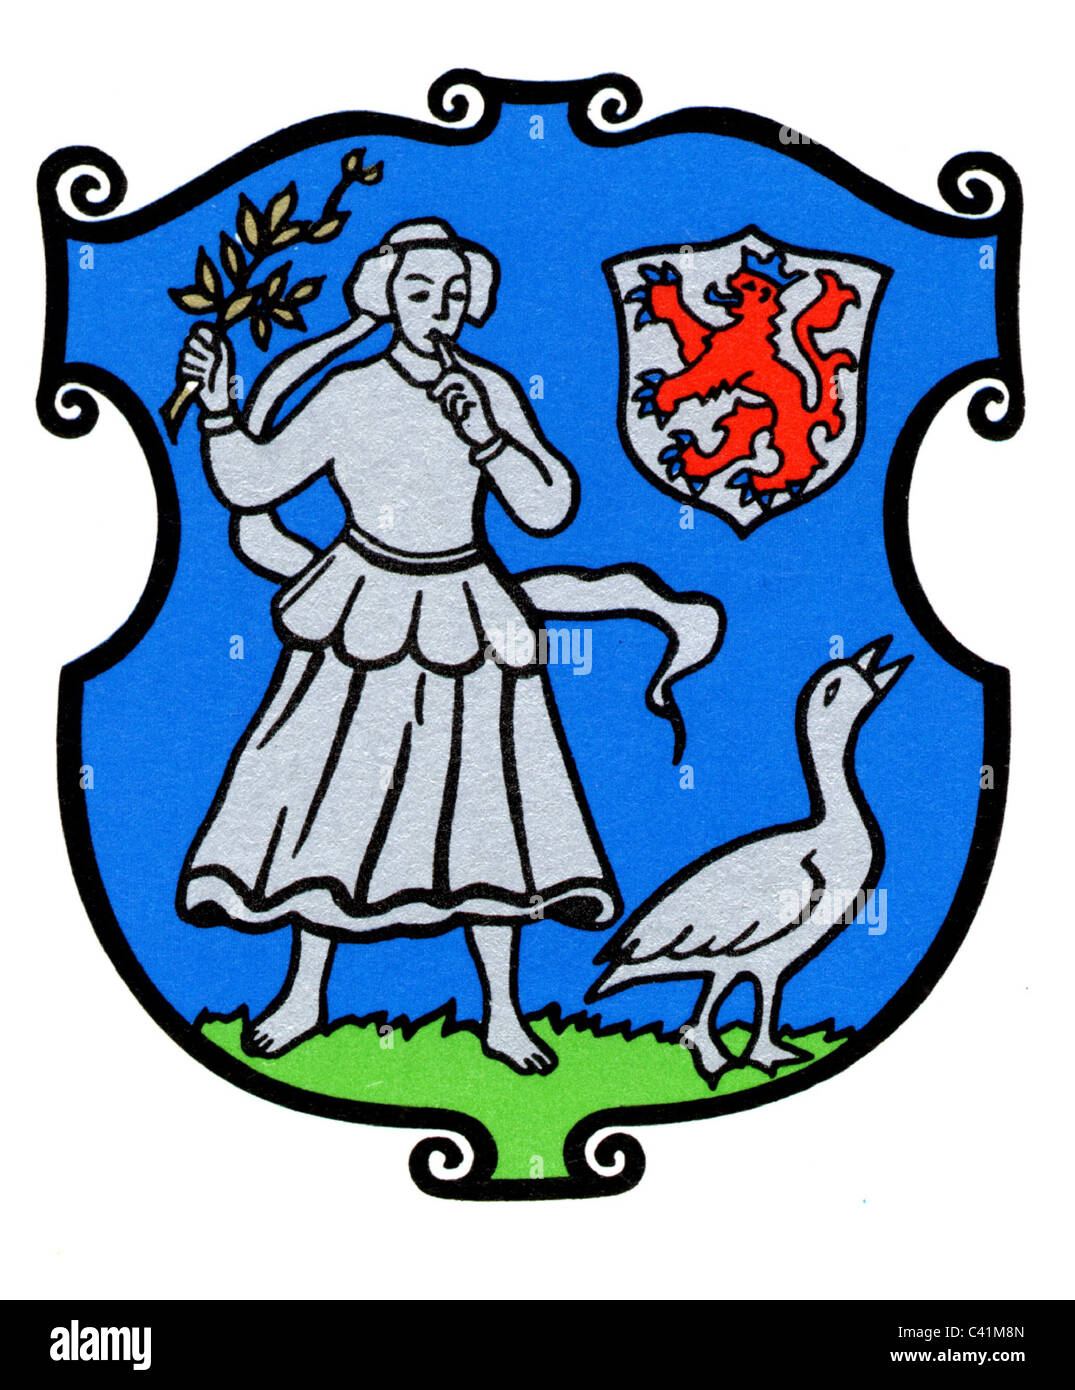 coat of arms / emblems, Monheim am Rhein, city arms, North Rhine-Westphalia, Germany, Additional-Rights-Clearences - Stock Image